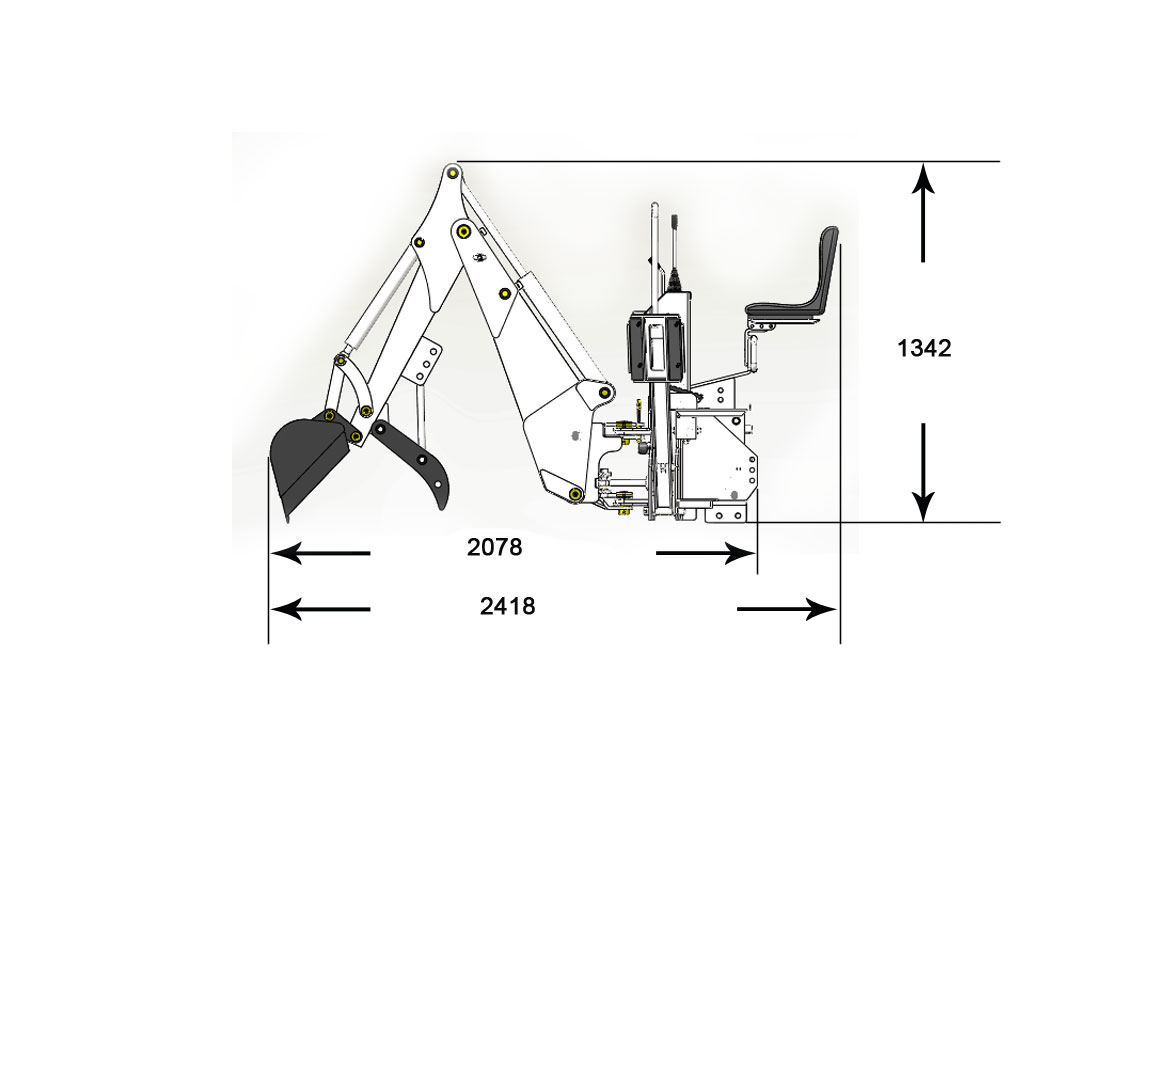 Bowell Tractor Europe Backhoe Bh 6 Excavator Schematic Stay Mounted To Your When You Drive On Public Roads As It Does Not Cover Any Lights And The Hydraulic Stabilizers Give Very Compact